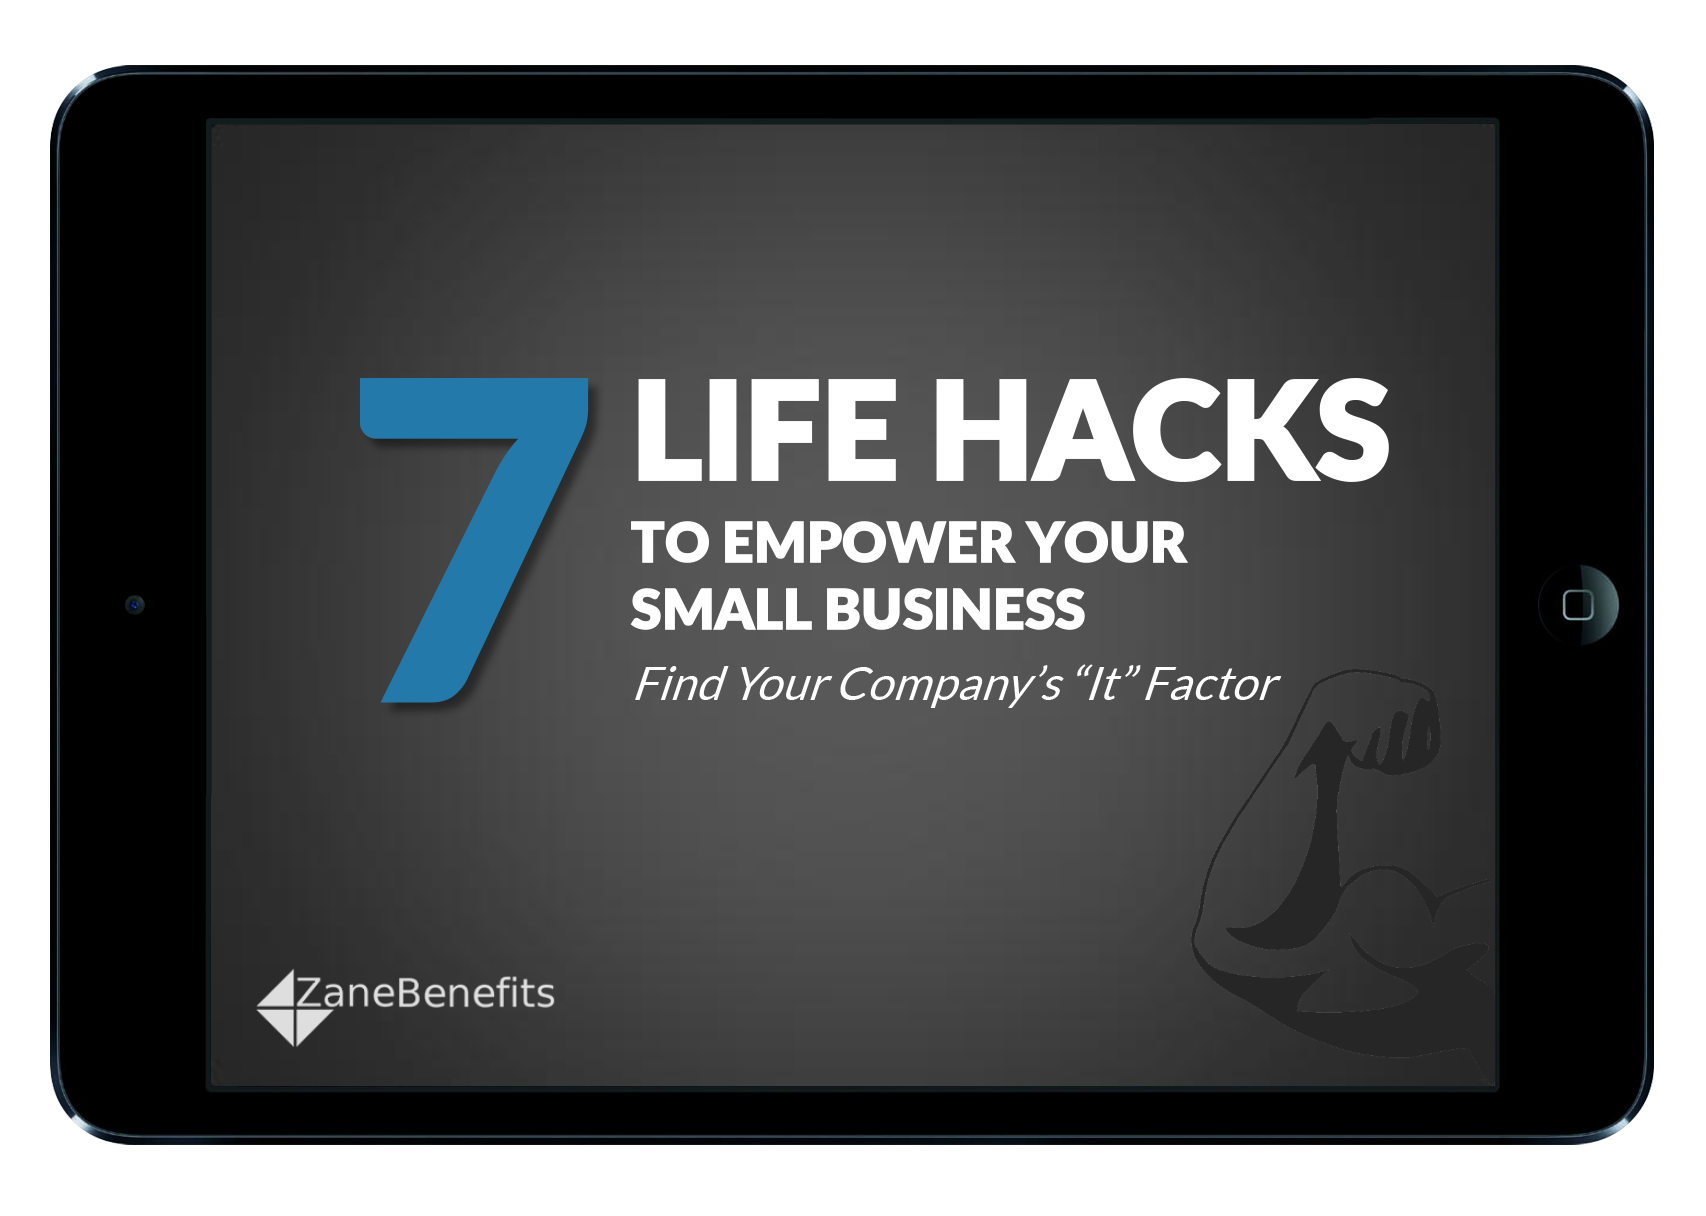 7 Life Hacks to Empower Your Small Business